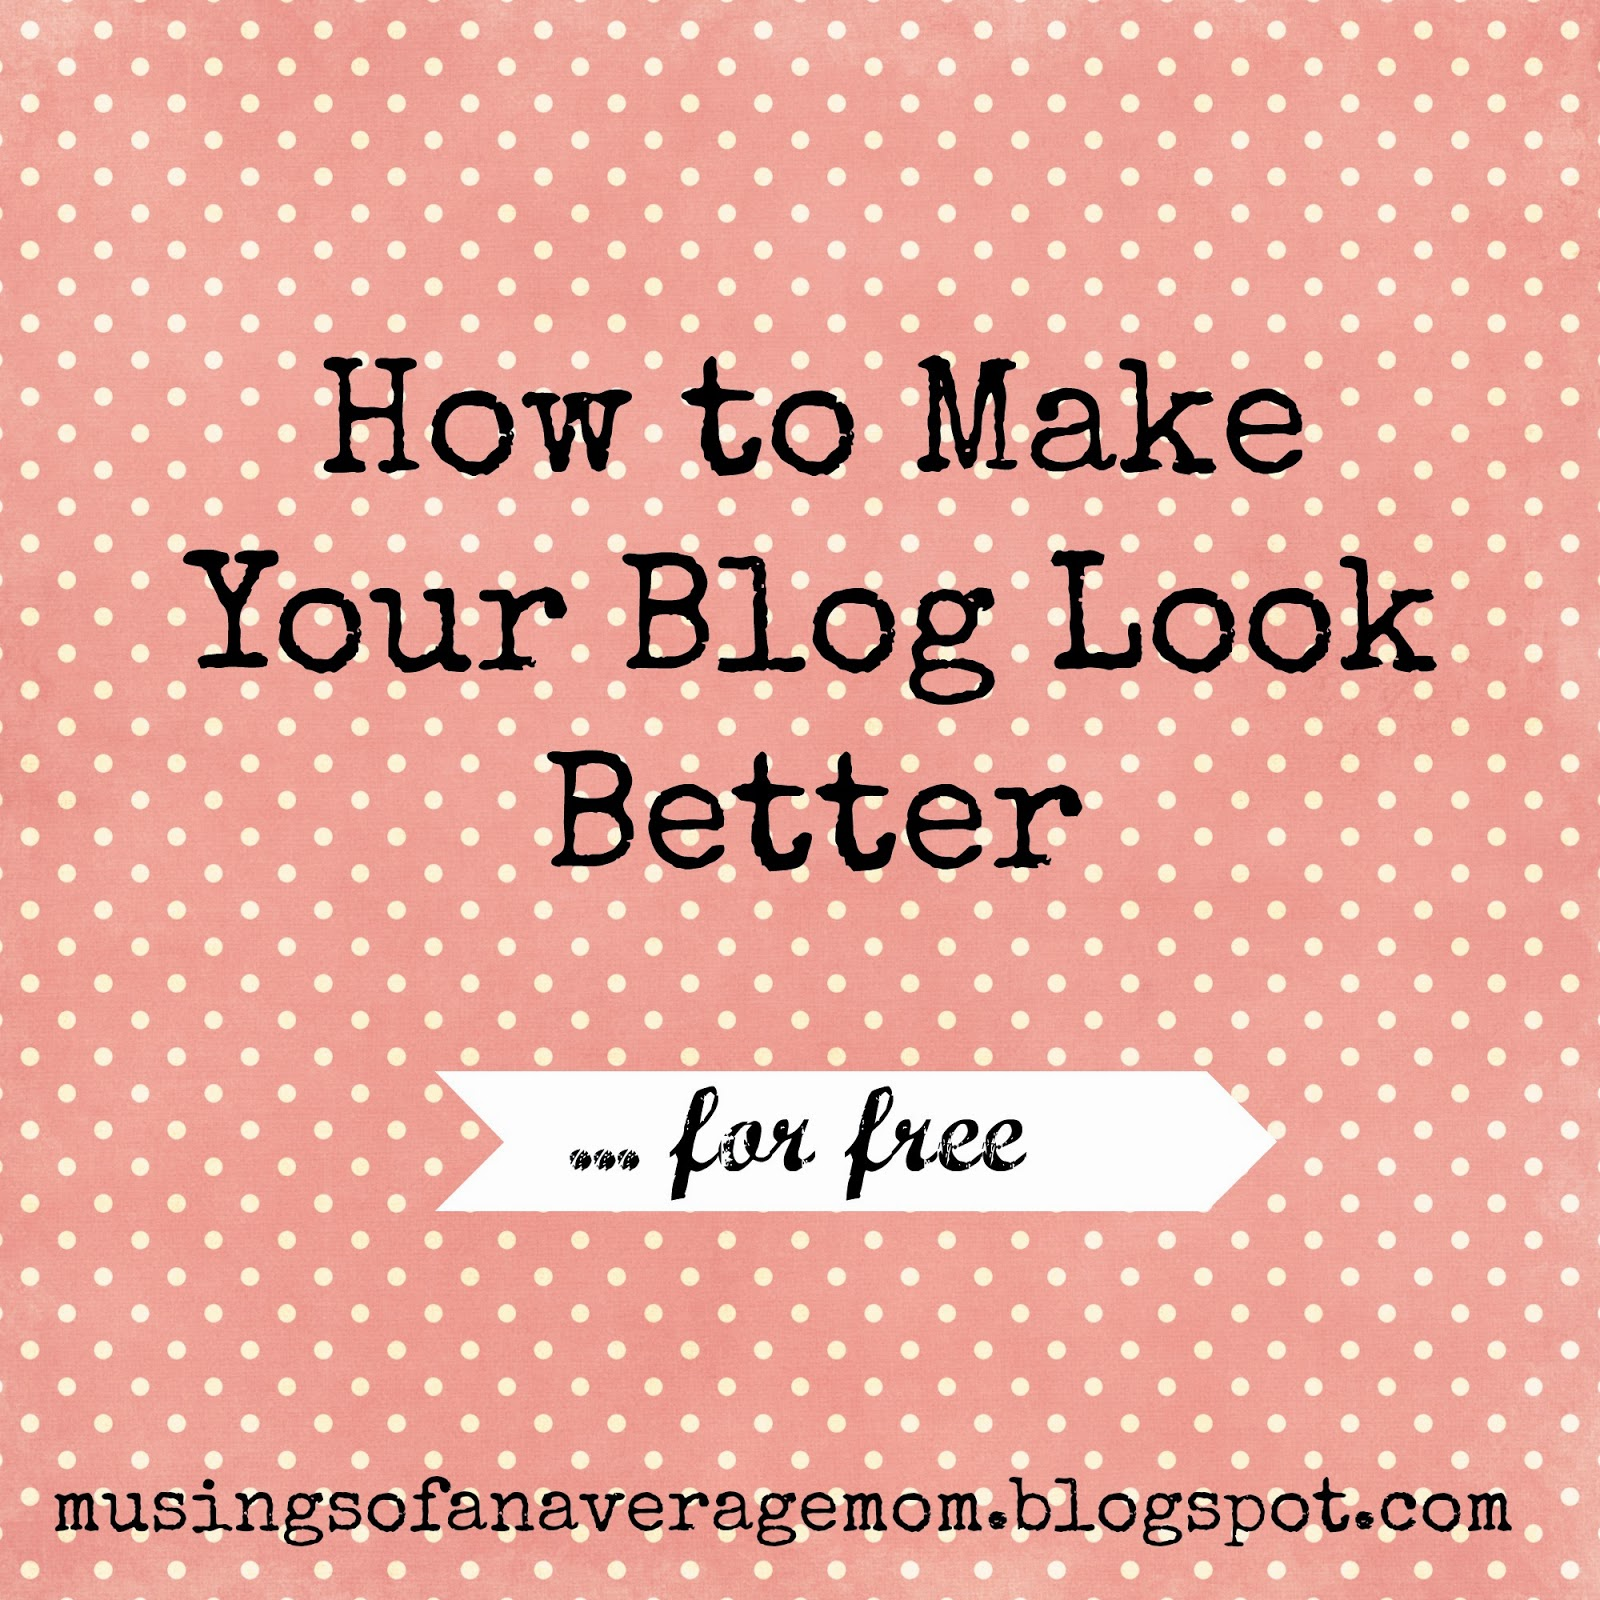 http://musingsofanaveragemom.blogspot.ca/2014/08/how-to-make-your-free-blog-look-better.html